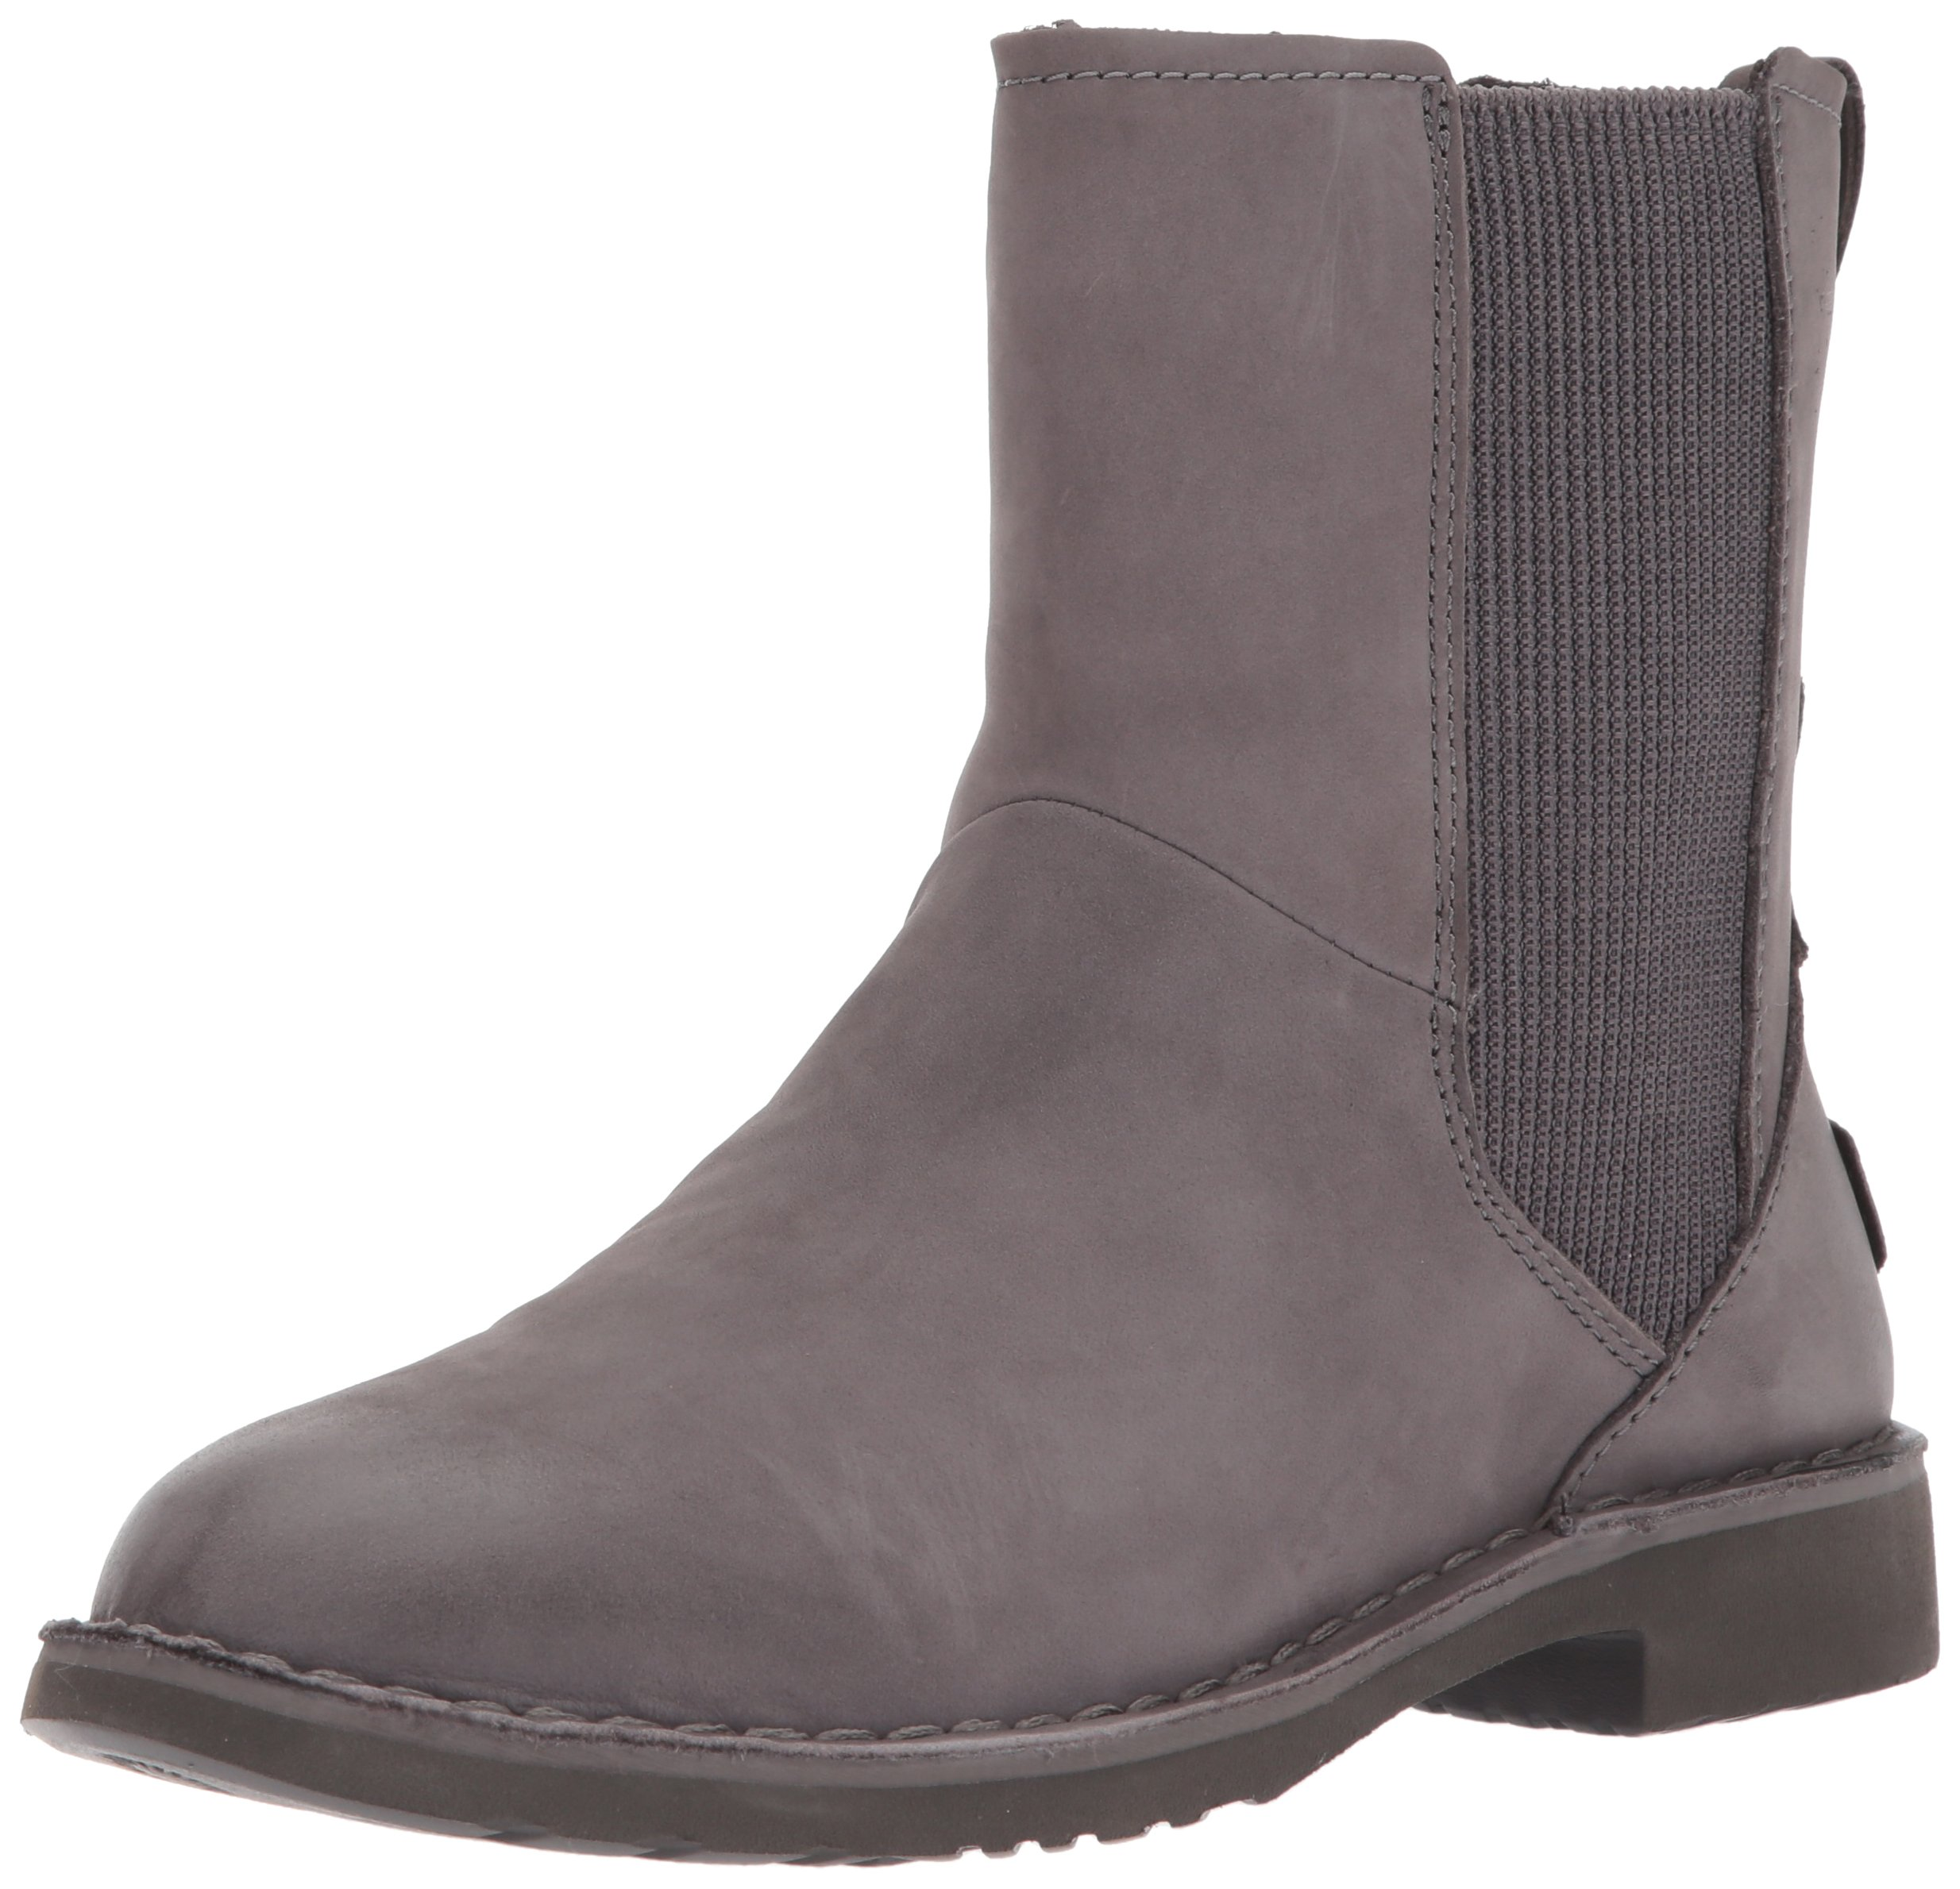 UGG Women's Larra Snow Boot, Charcoal, 8 M US